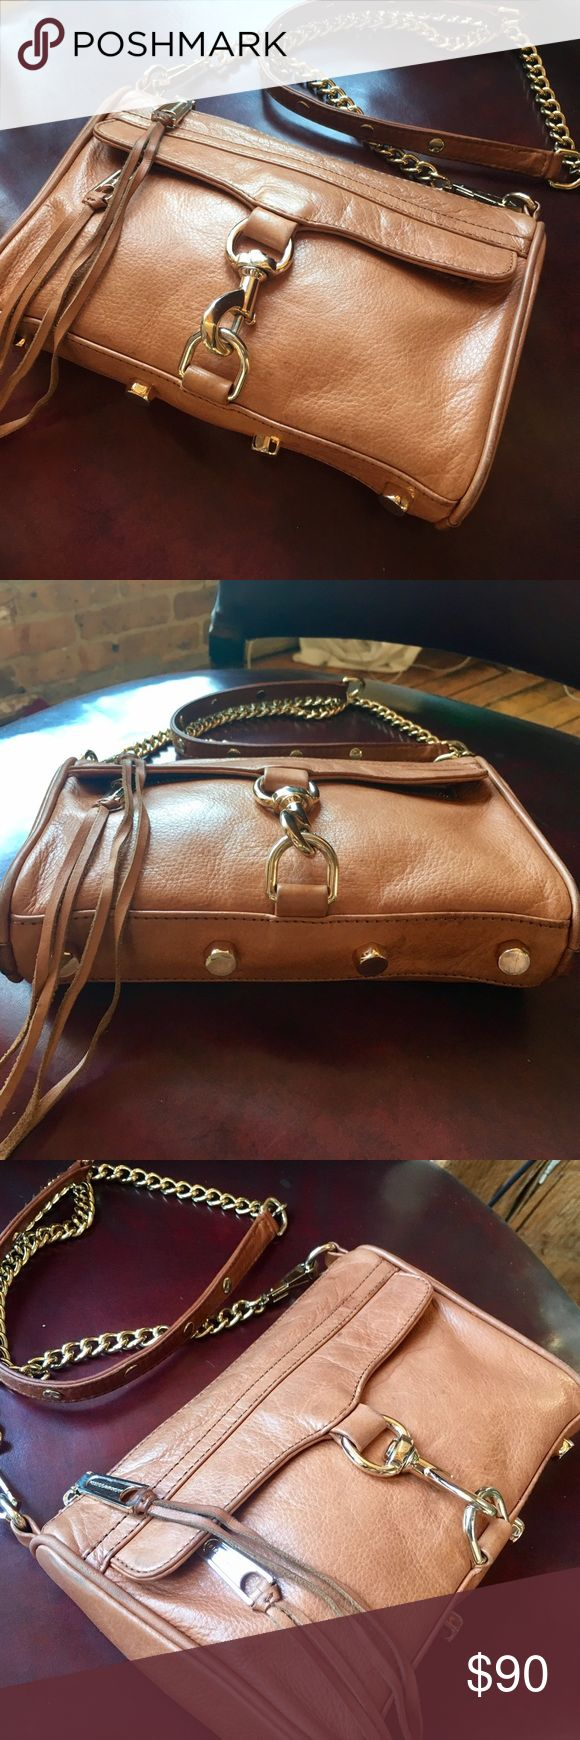 Rebecca Minkoff Mini Mac crossbody bag brown tan Rebecca Minkoff Mini Mac crossbody handbag. Brown/tan. Great condition. Rebecca Minkoff Bags Crossbody Bags